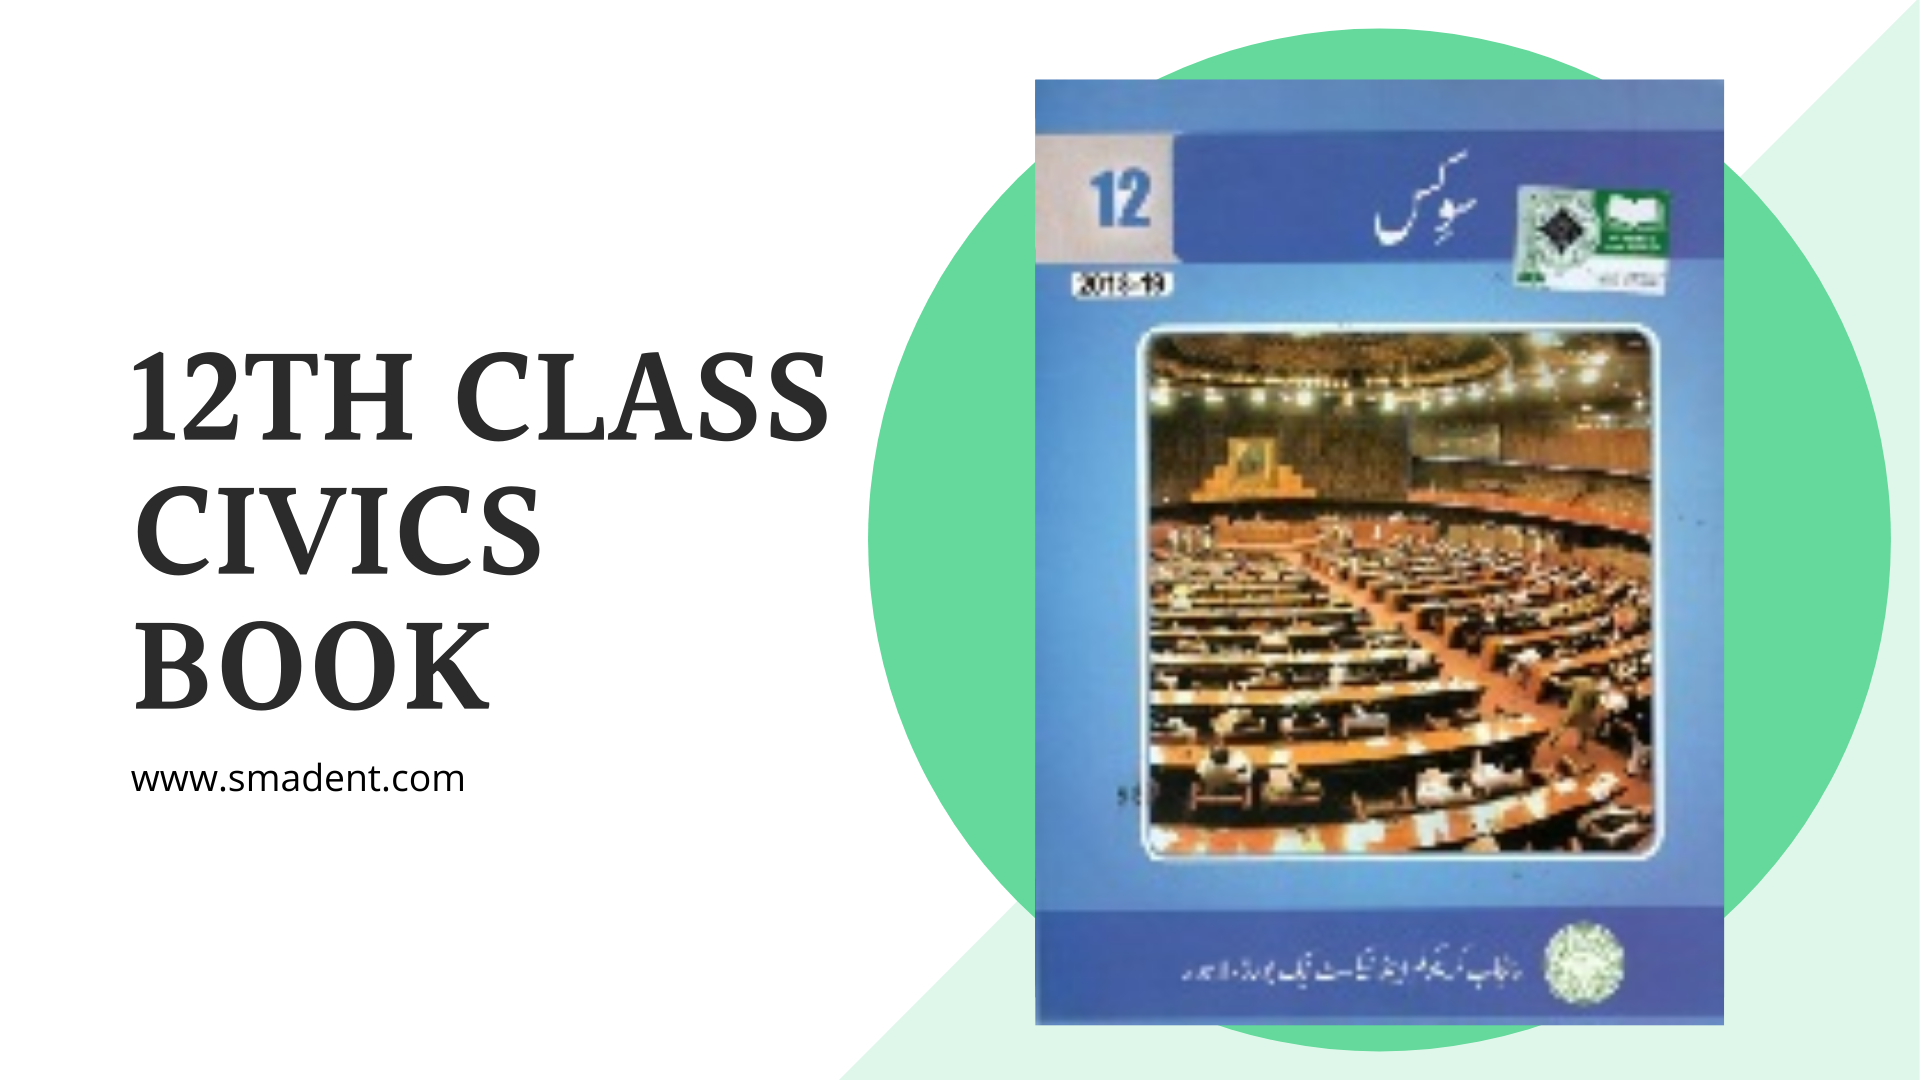 12th Class Civics Textbook - Read or Download